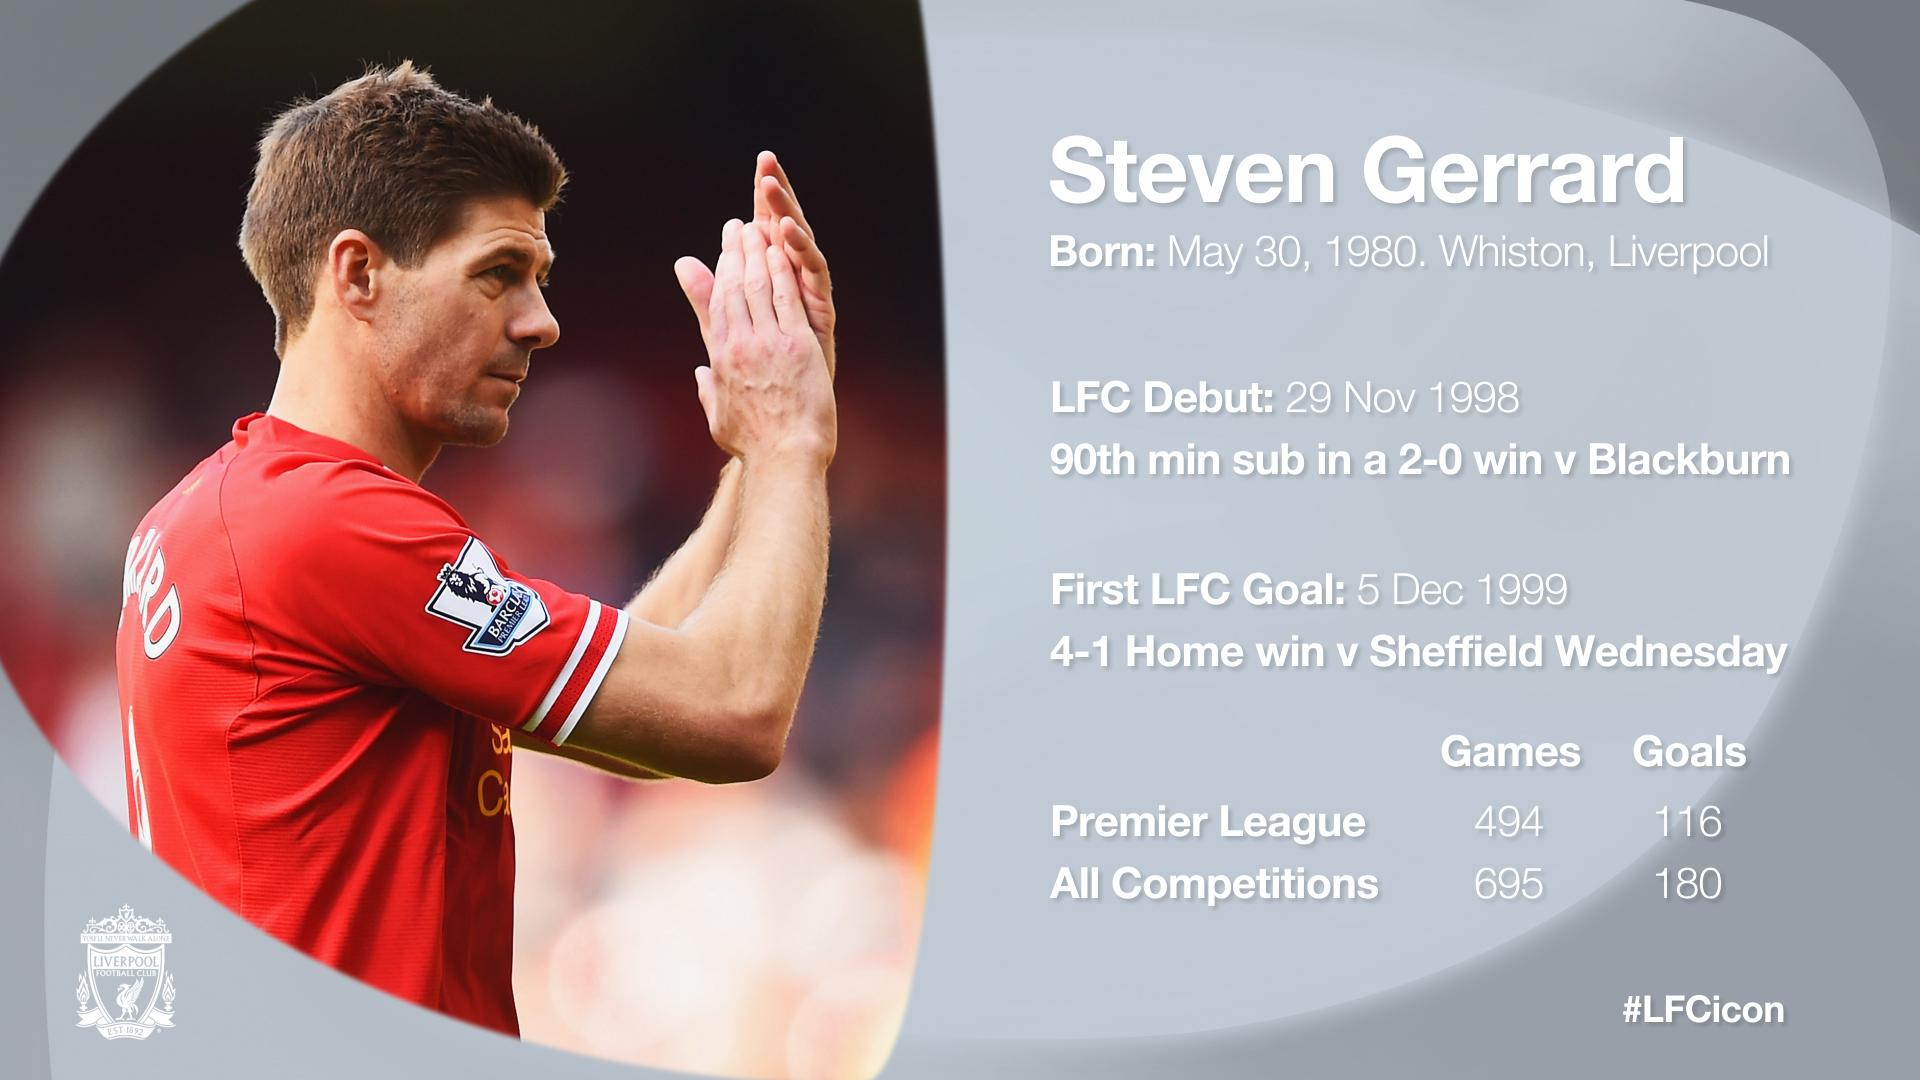 Steven Gerrard in facts, stats and honours... #LFCicon http://t.co/qYfsCaAa3l